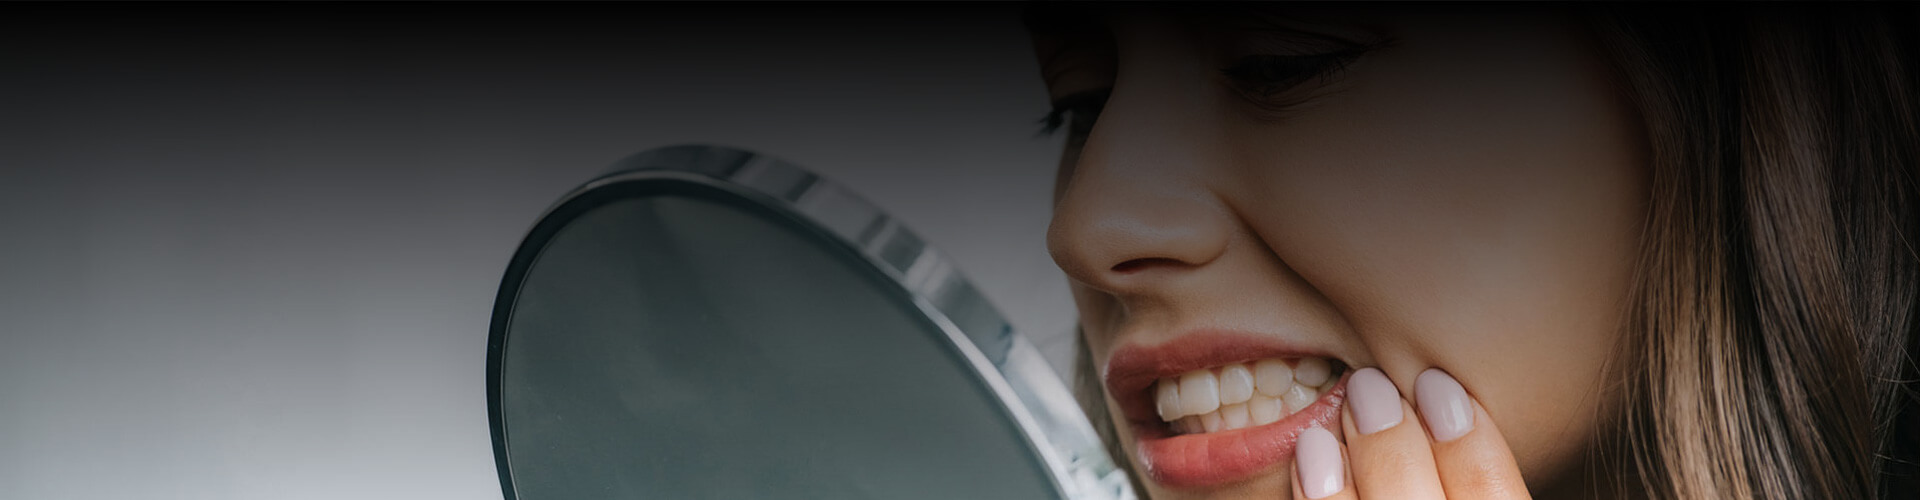 Cropped view of woman suffering from pain looking at her teeth in mirror